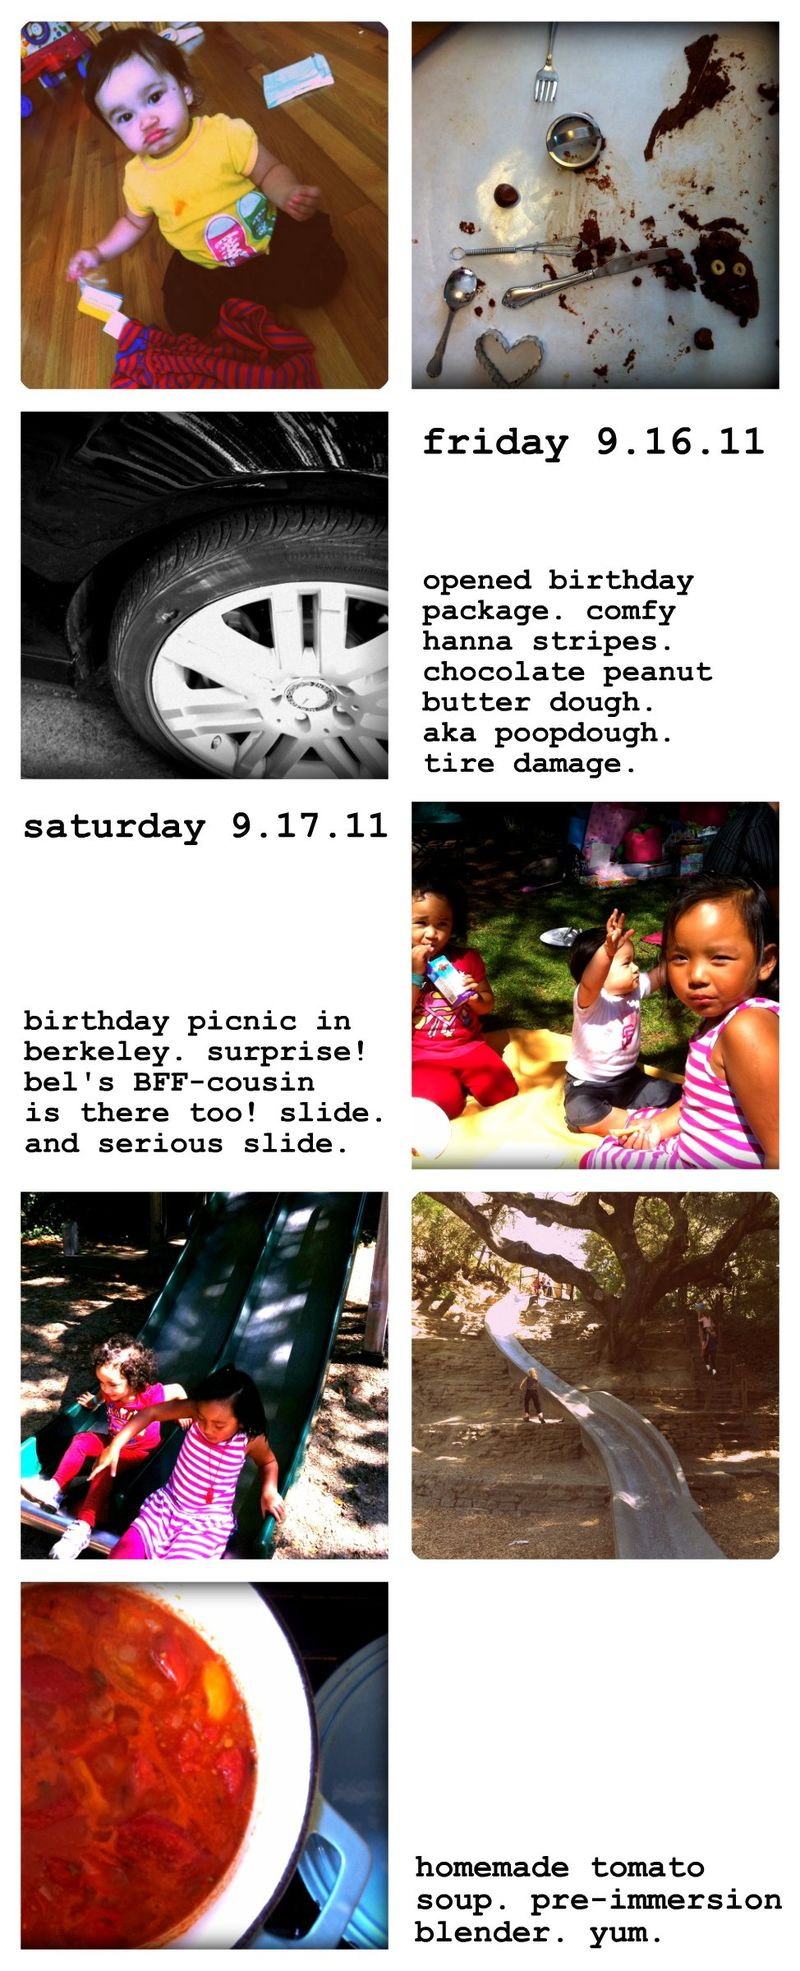 Weekend collage 9.16.11